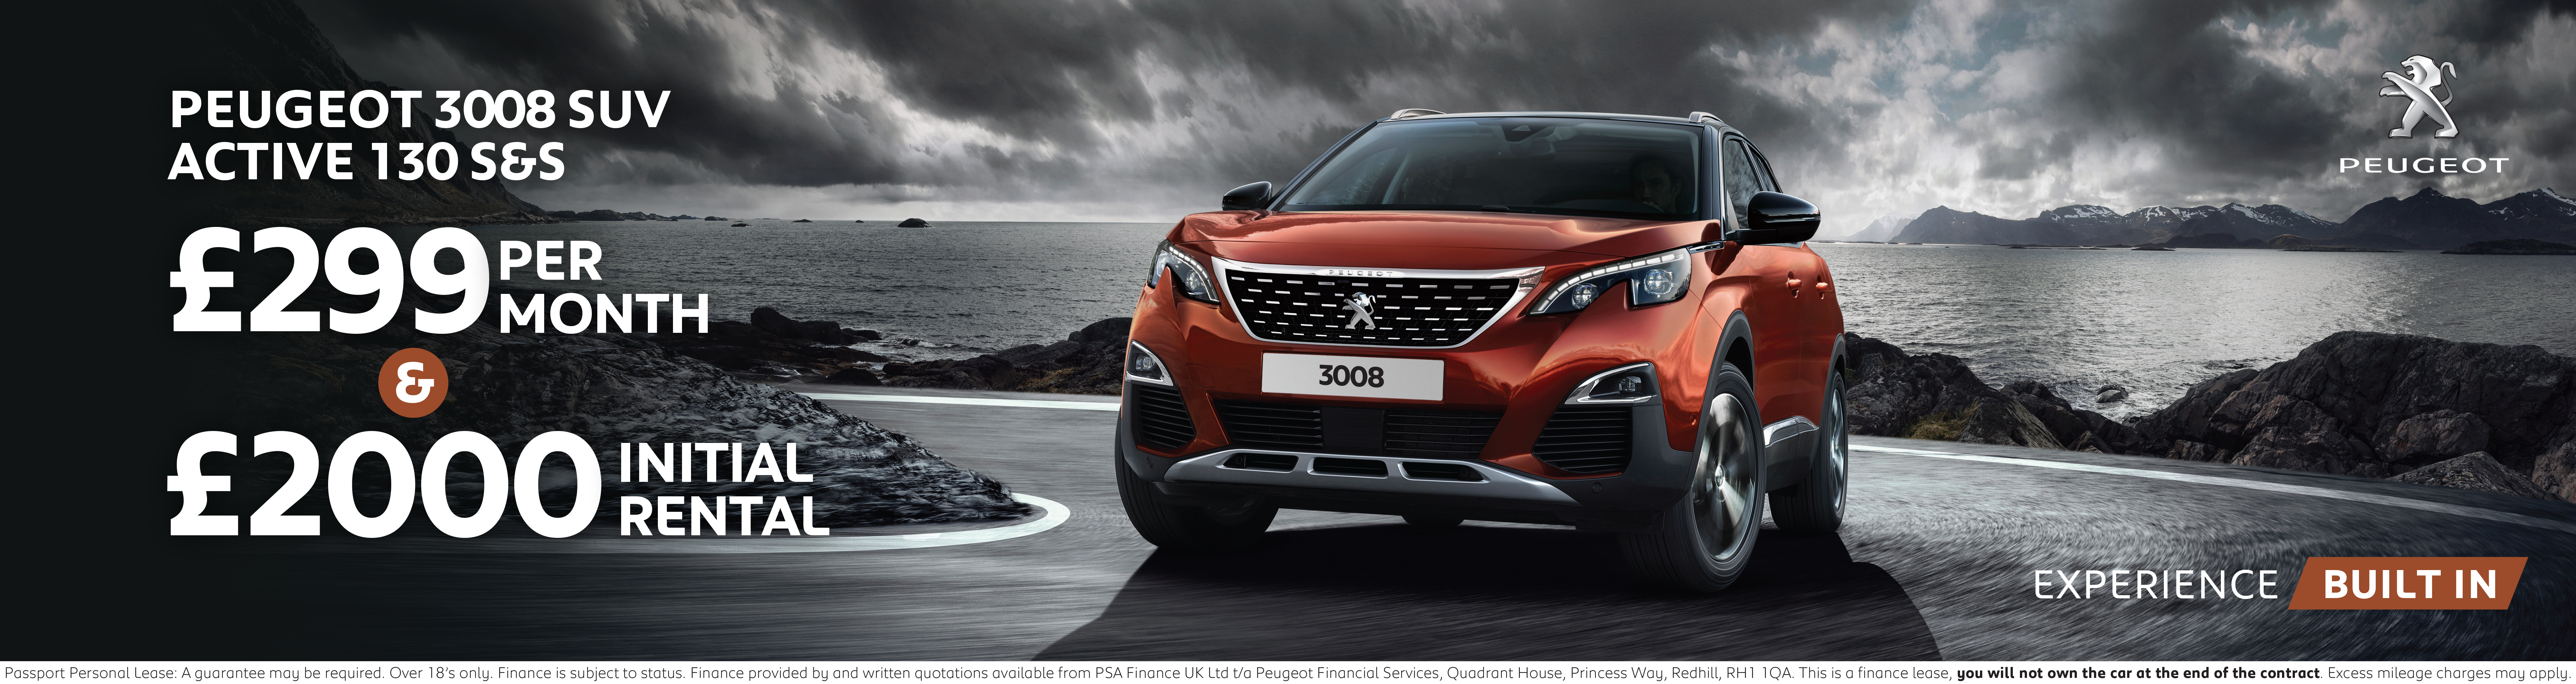 Peugeot 3008 SUV Finance Offer